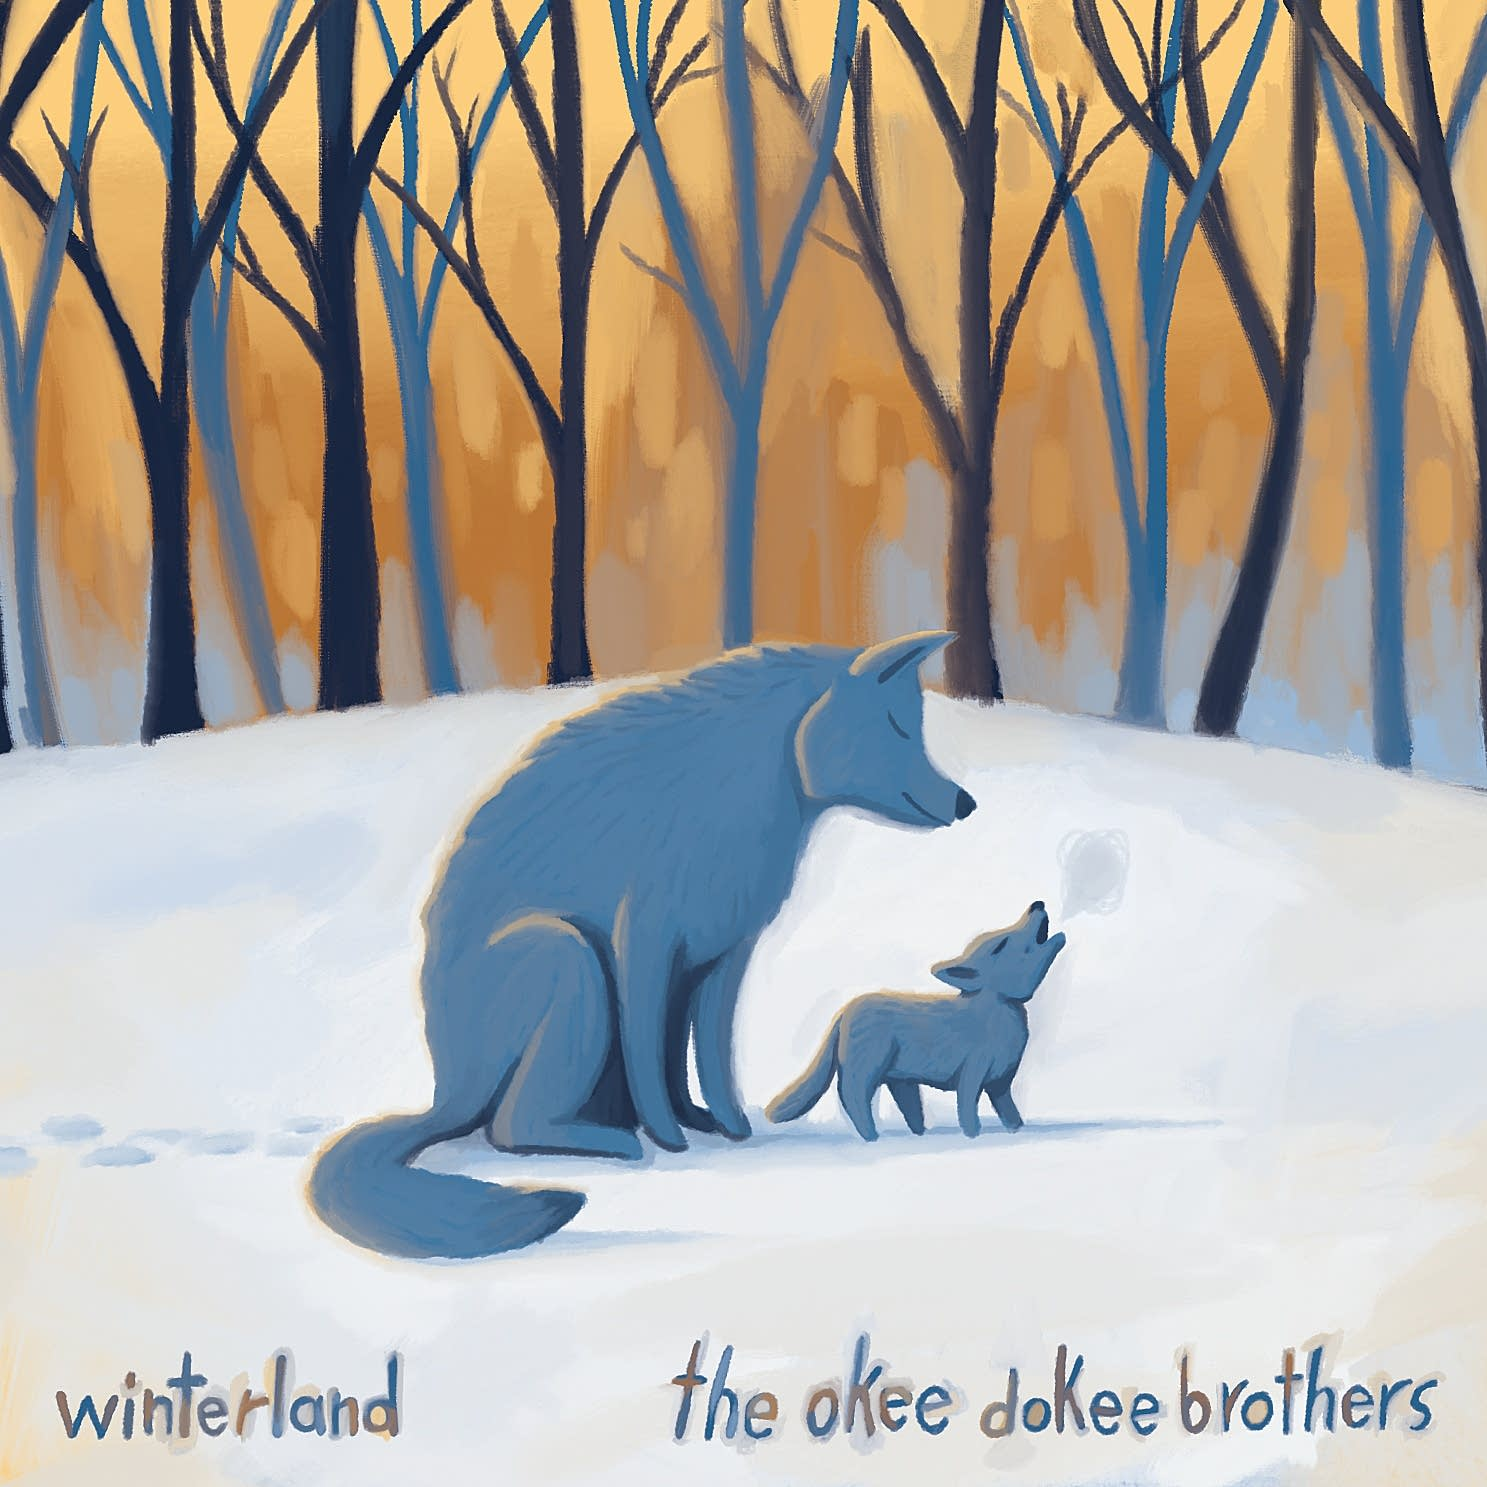 The Okee Dokee Brothers, 'Winterland'